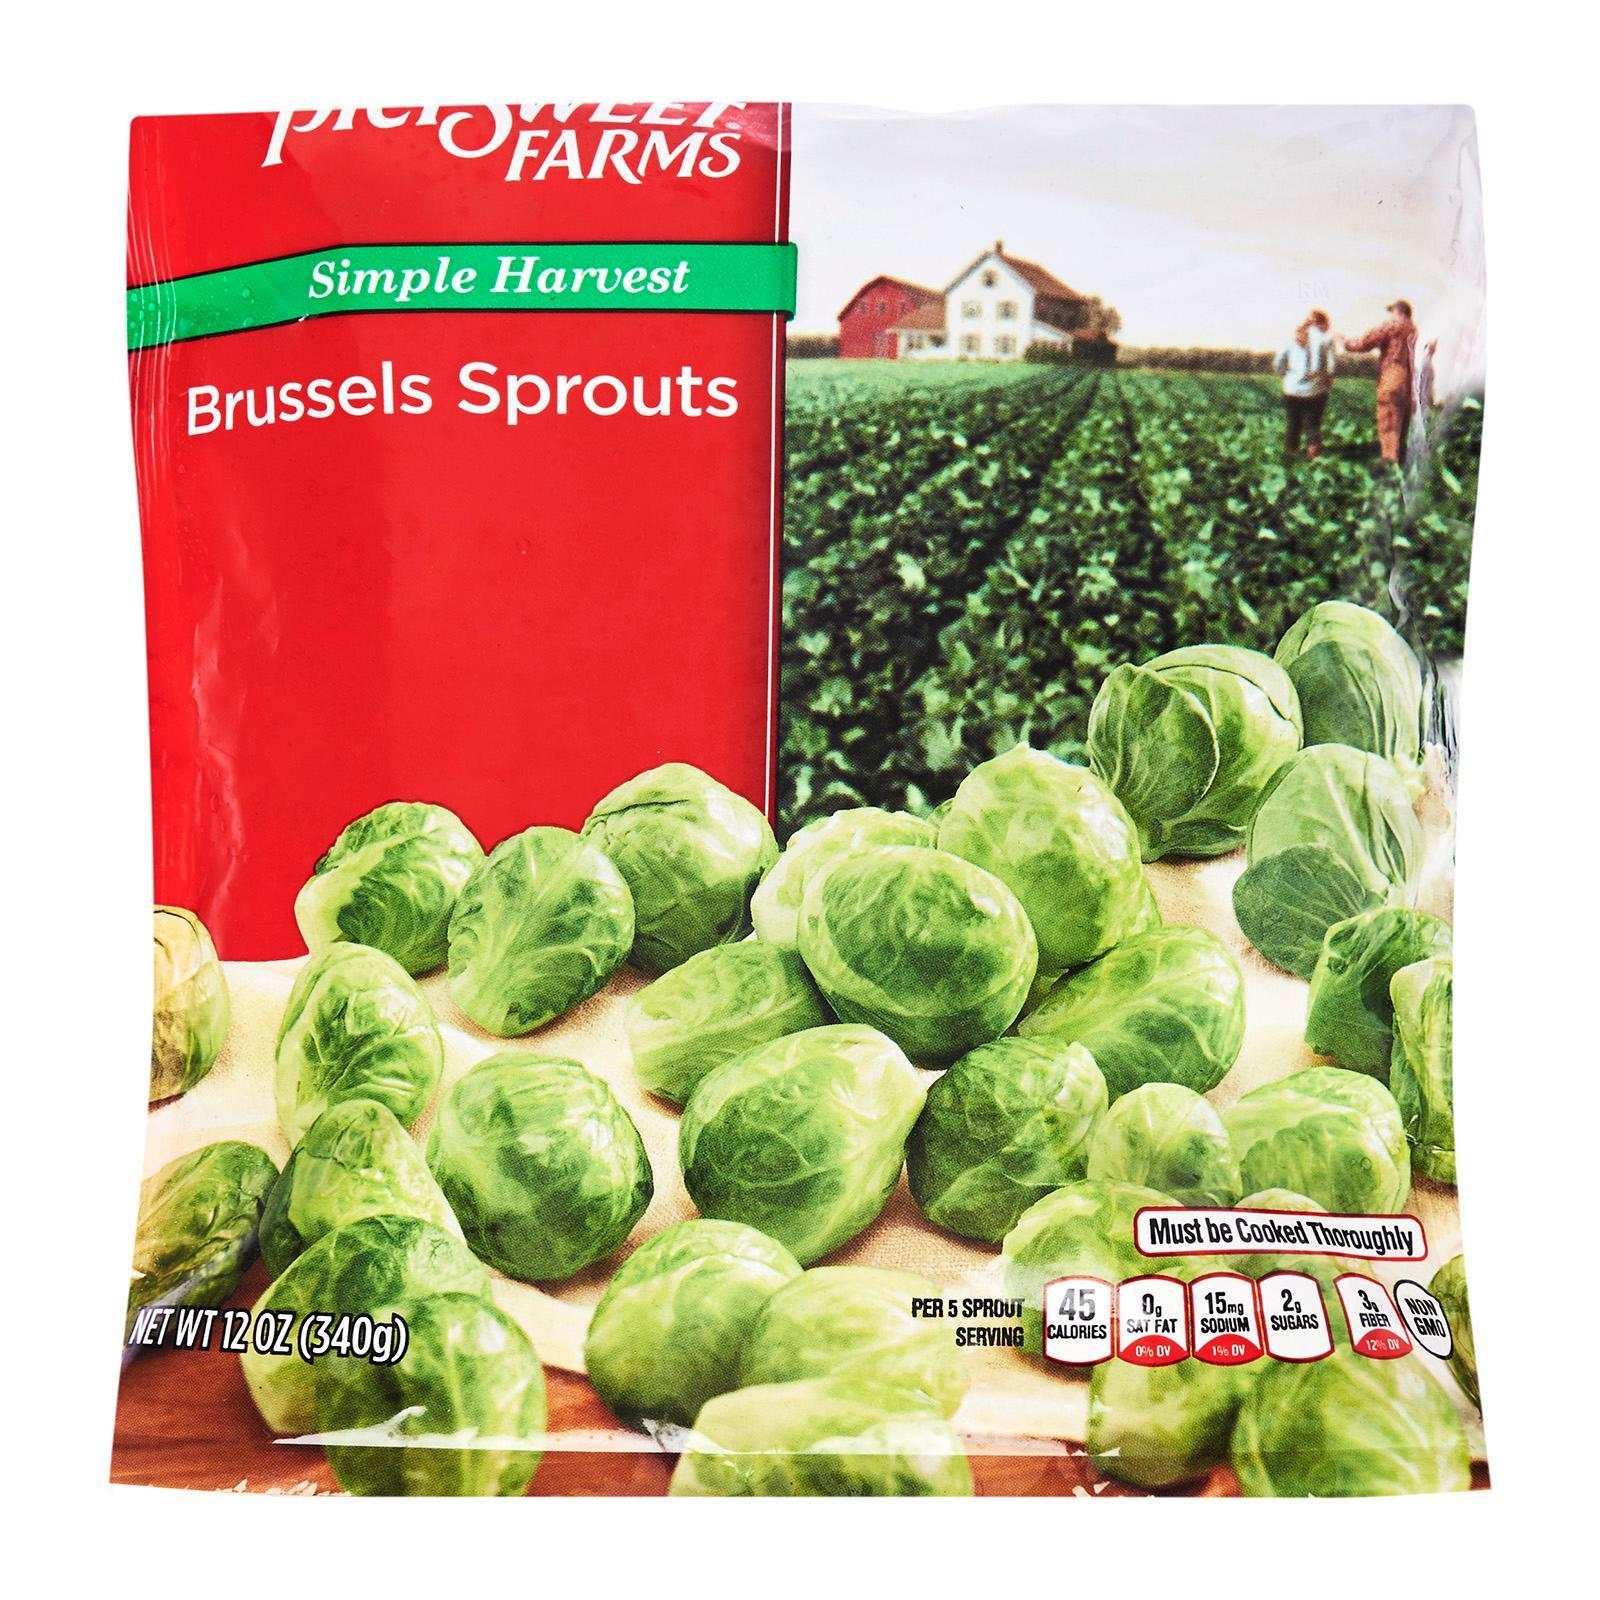 Pictsweet Farms Baby Brussels Sprouts - Frozen